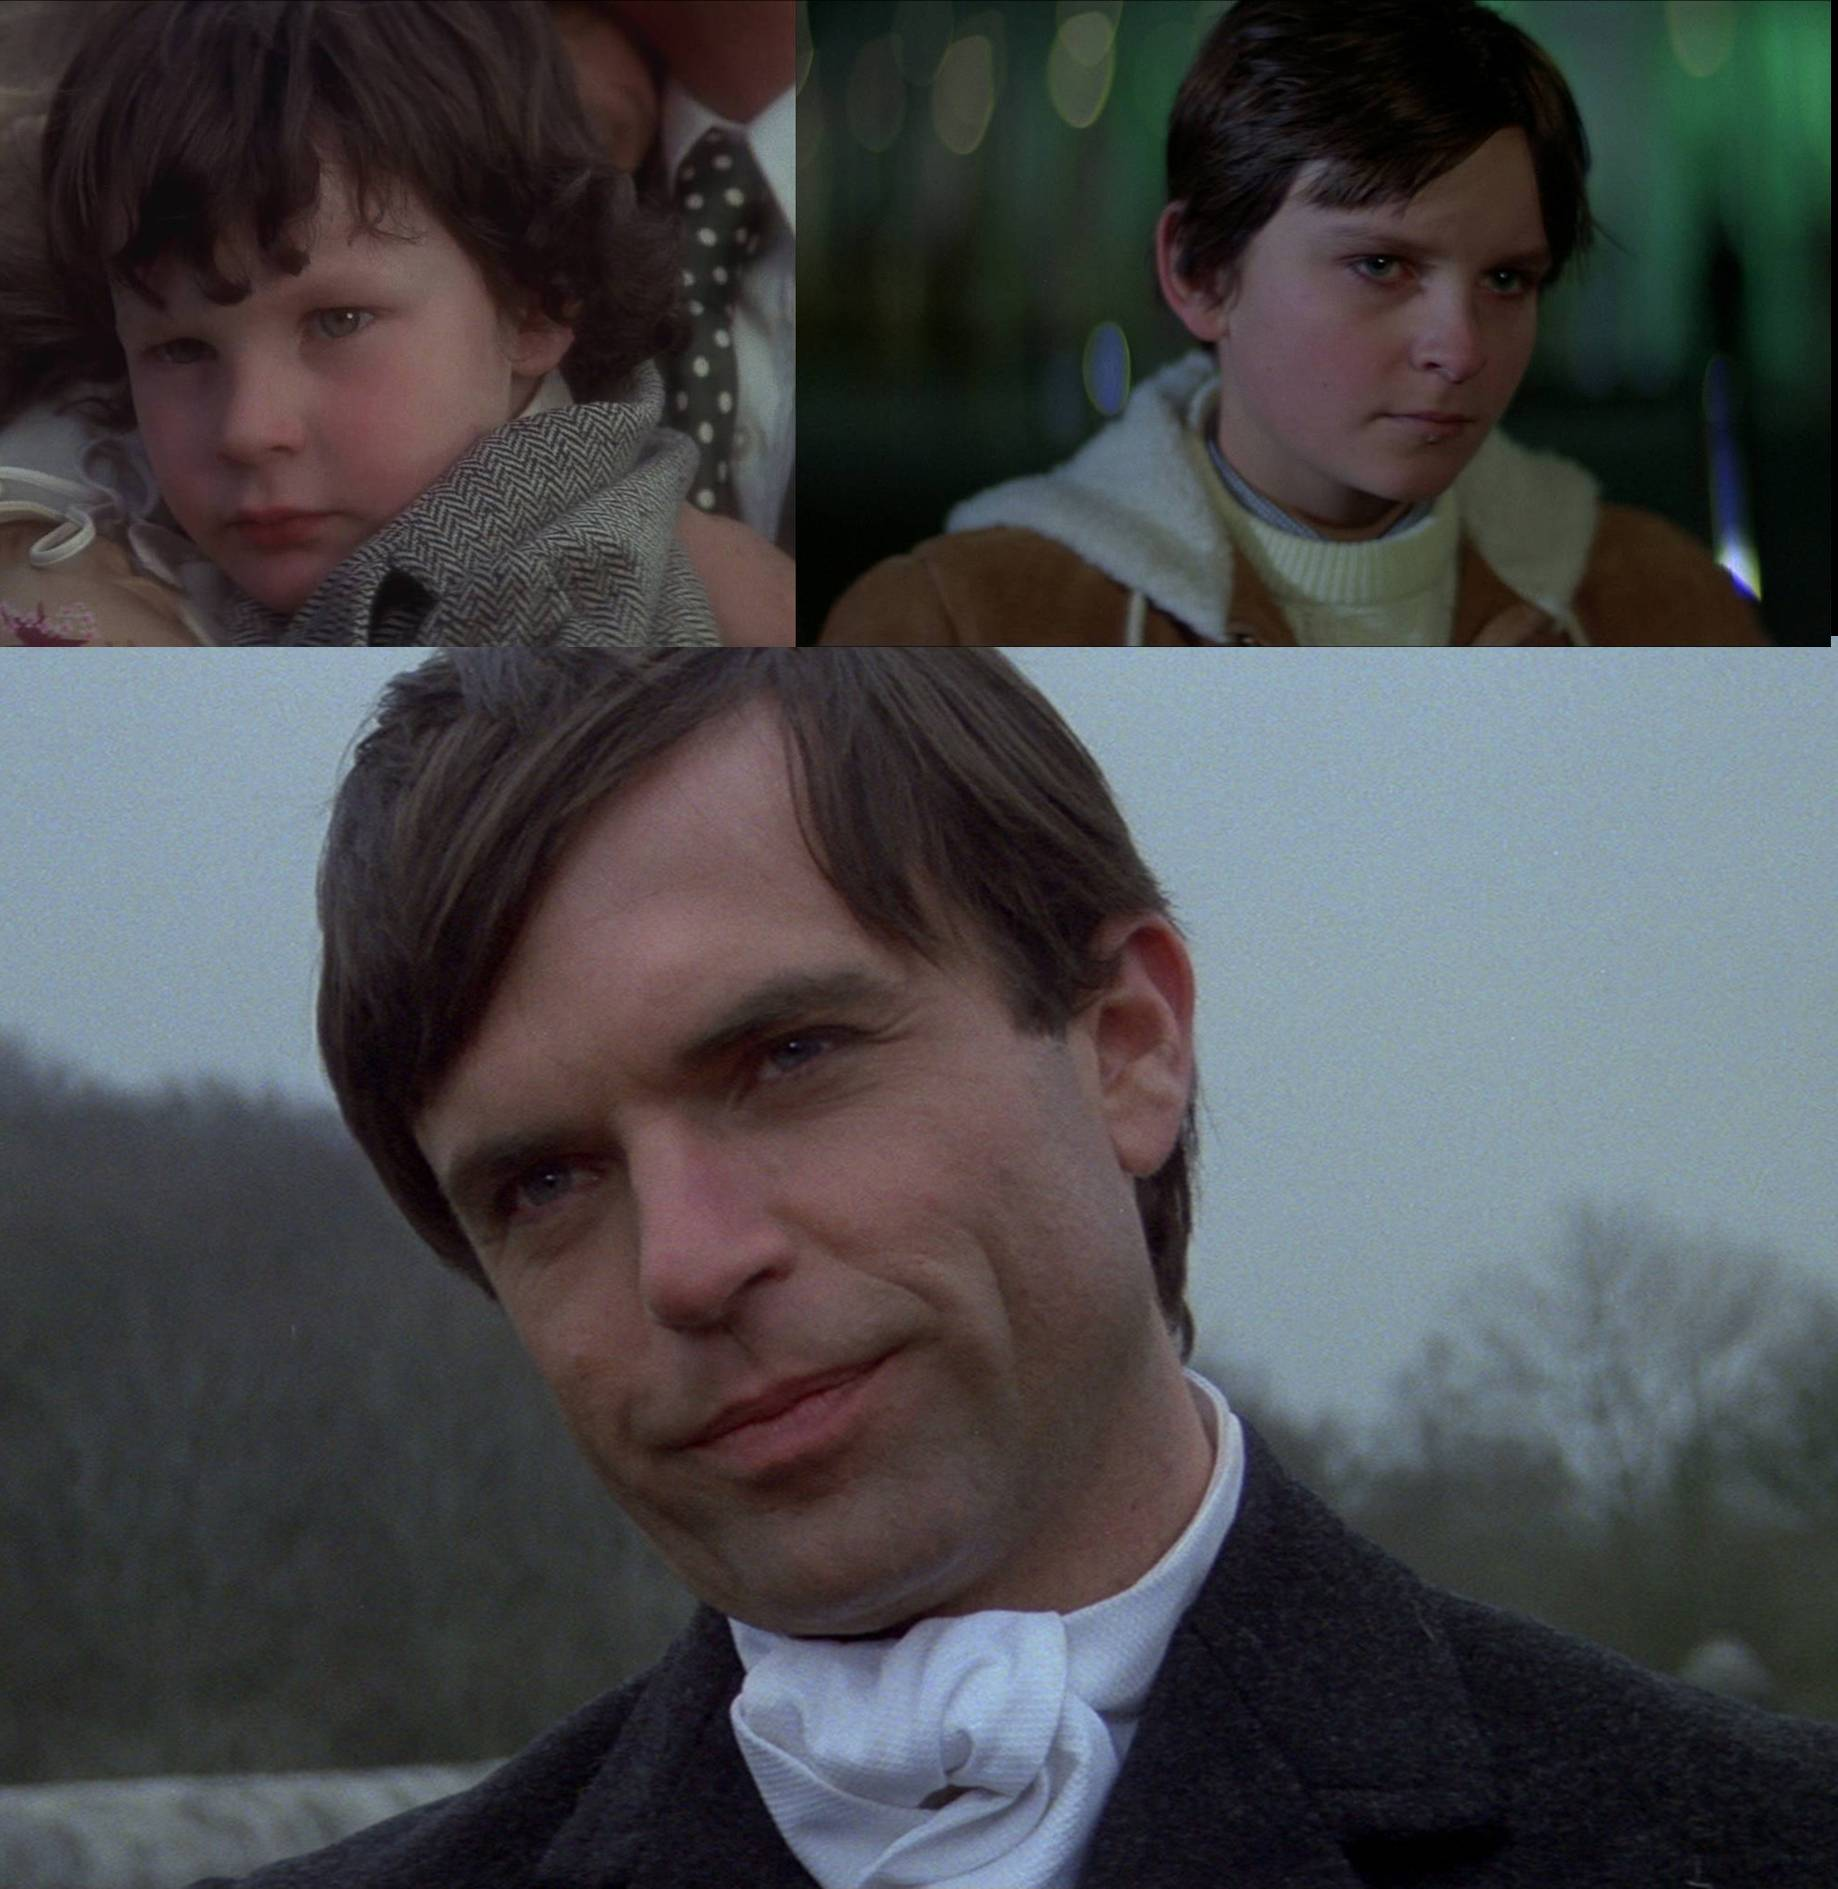 Damien thorn 1976 the omen wiki fandom powered by wikia for Sign of portent 3